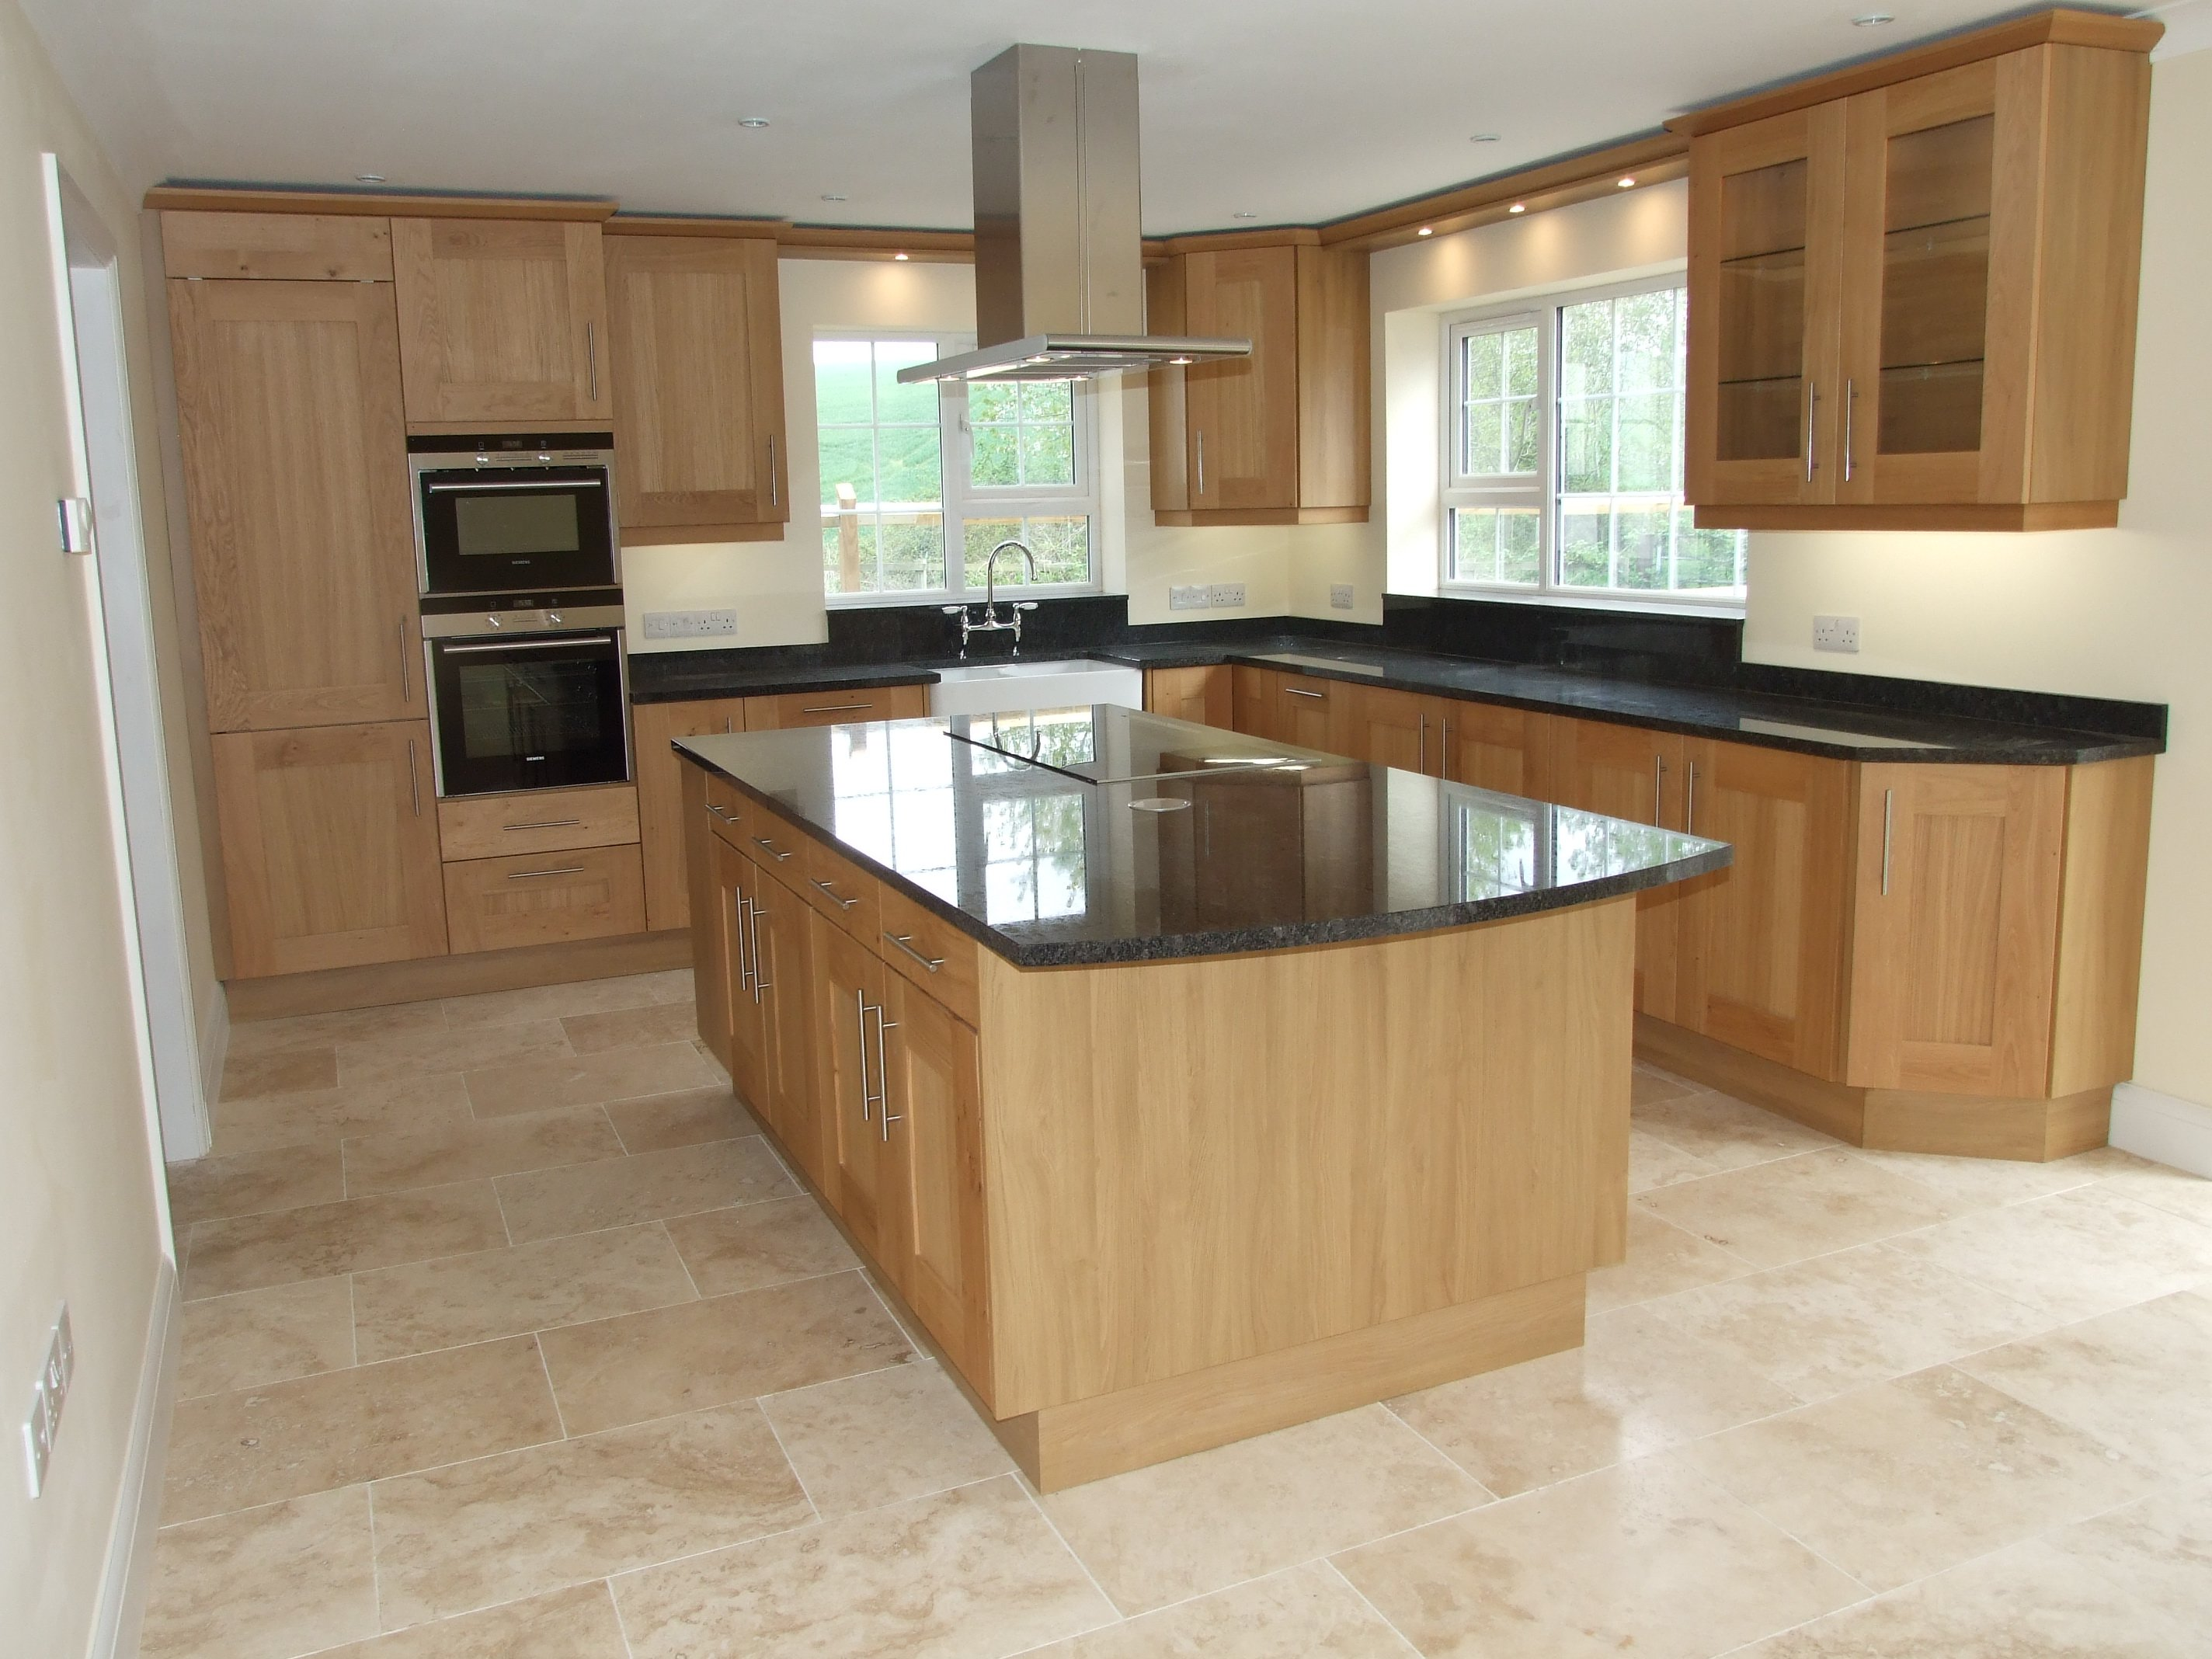 Granite Kitchen Work Tops 1000 Images About Kitchen On Pinterest Fitted Kitchens Oak